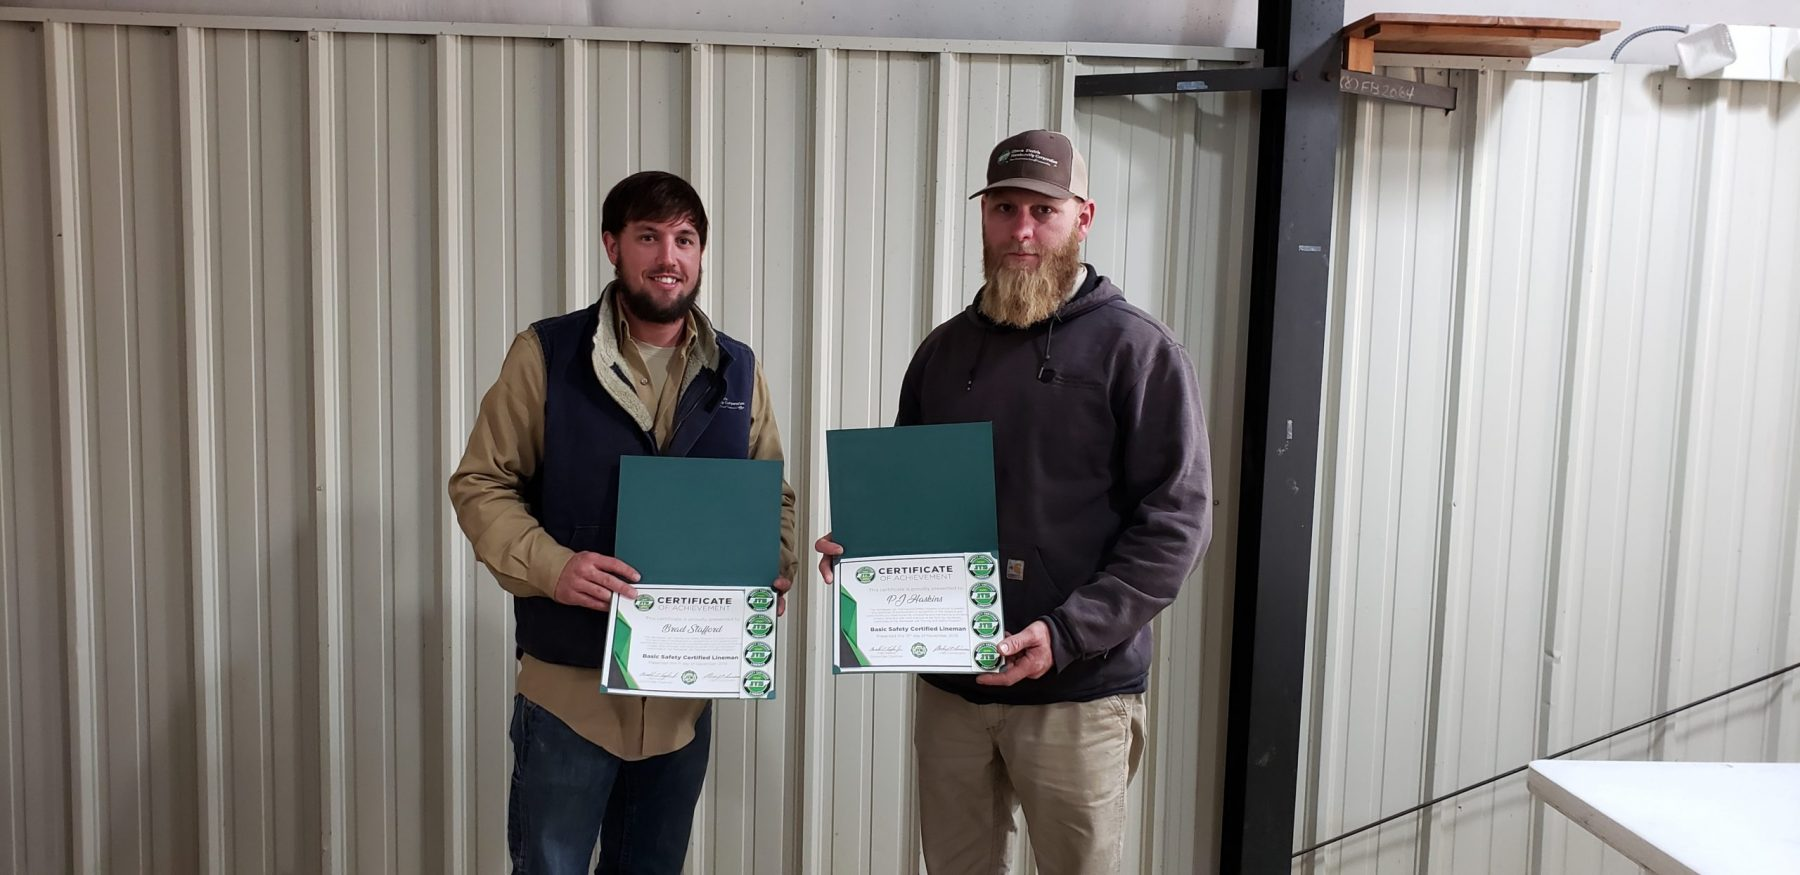 2019 Basic SCL Recipients Brad Stafford and PJ Haskins from Gibson Electric Membership Corporation